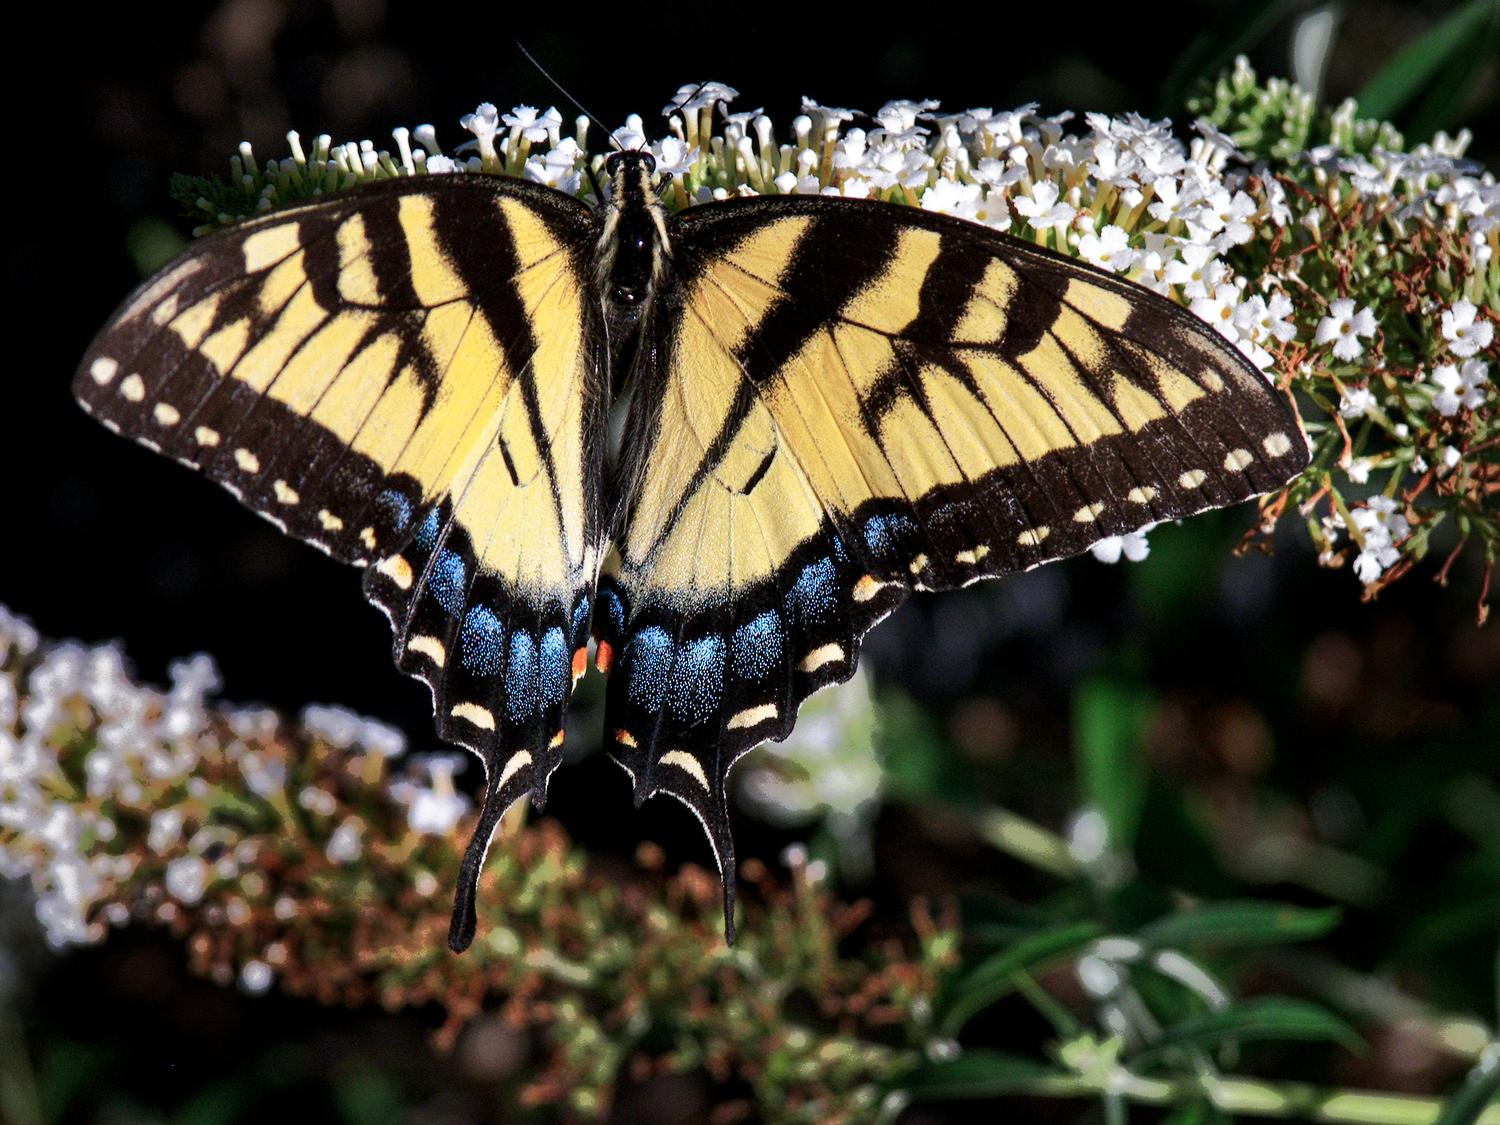 Swallowtail butterfly - Tiger swallowtail butterfly - Kodak Easyshare P880 - - art  - photography - by Tony Karp